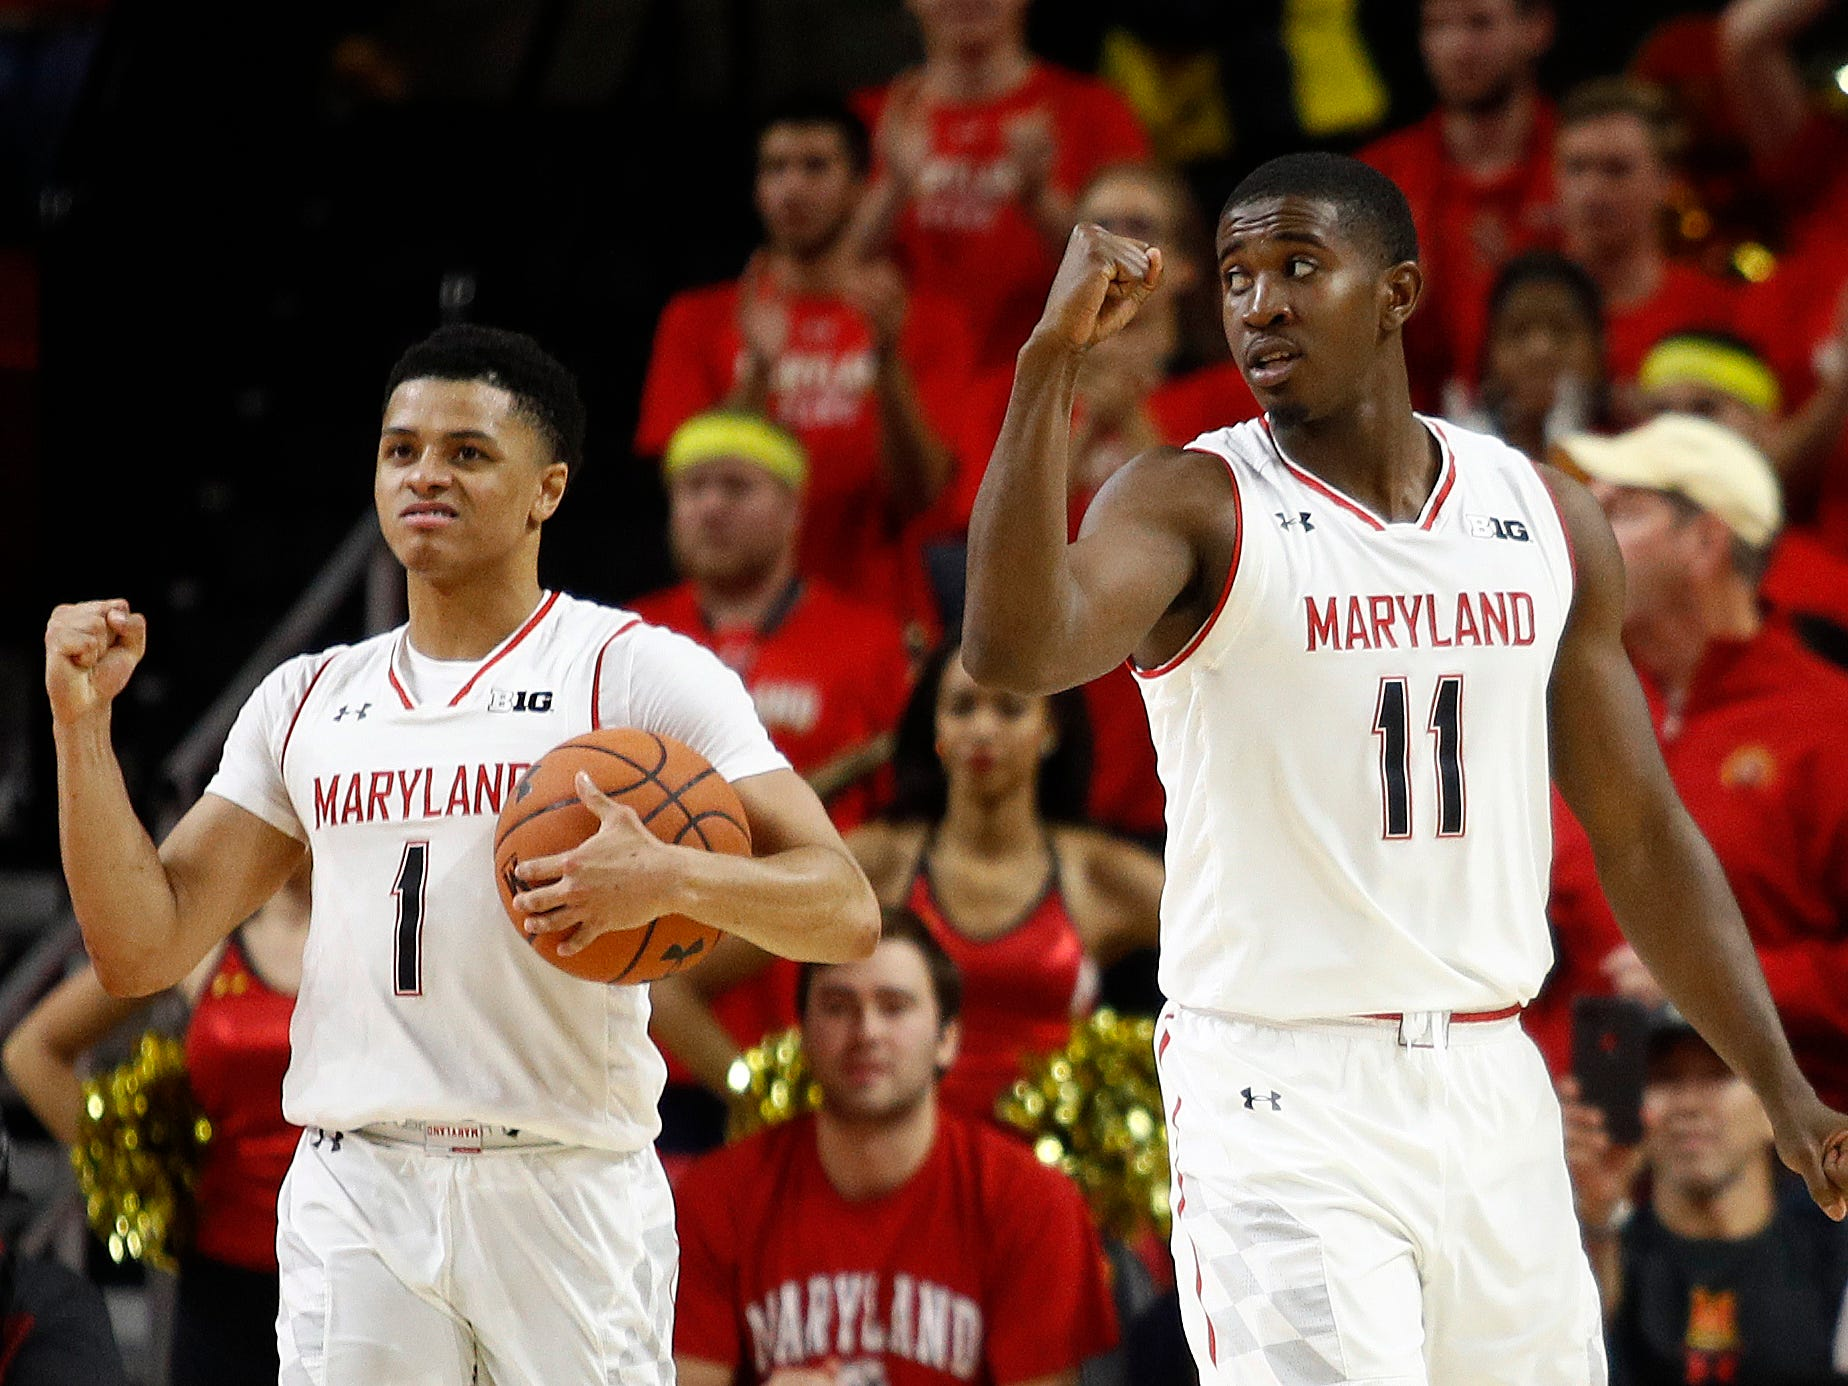 Maryland guards Anthony Cowan Jr. (1) and Darryl Morsell celebrate in the final moments of an NCAA college basketball game against Penn State, Saturday, Dec. 1, 2018, in College Park, Md. Maryland won 66-59. (AP Photo/Patrick Semansky)